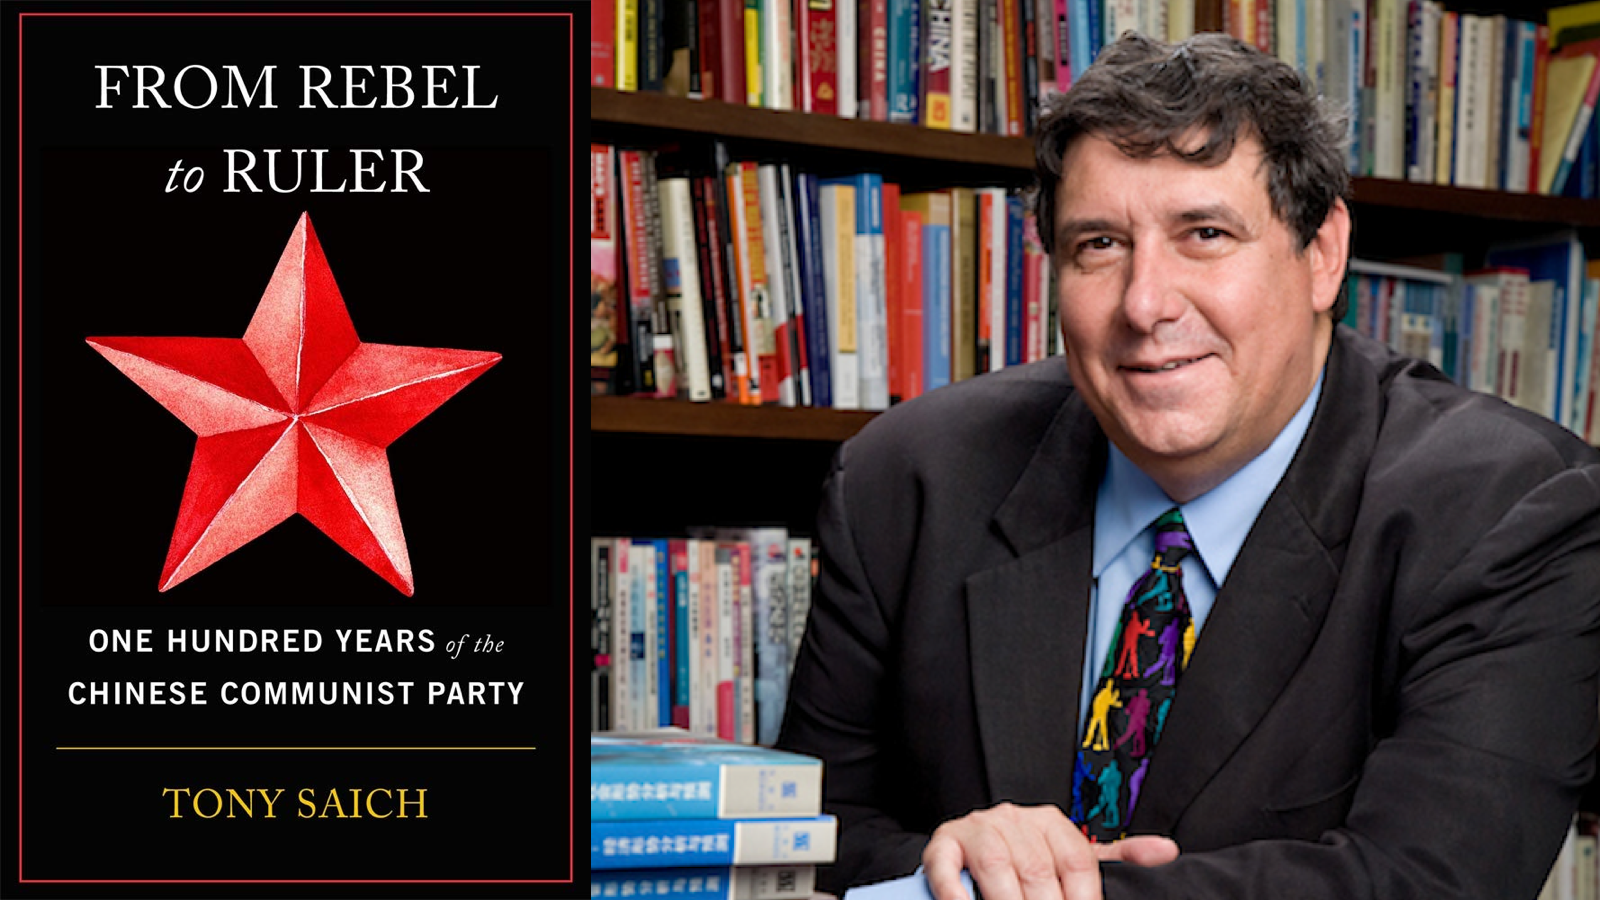 From Rebel to Ruler: One Hundred Years of the Chinese Communist Party by Tony Saich